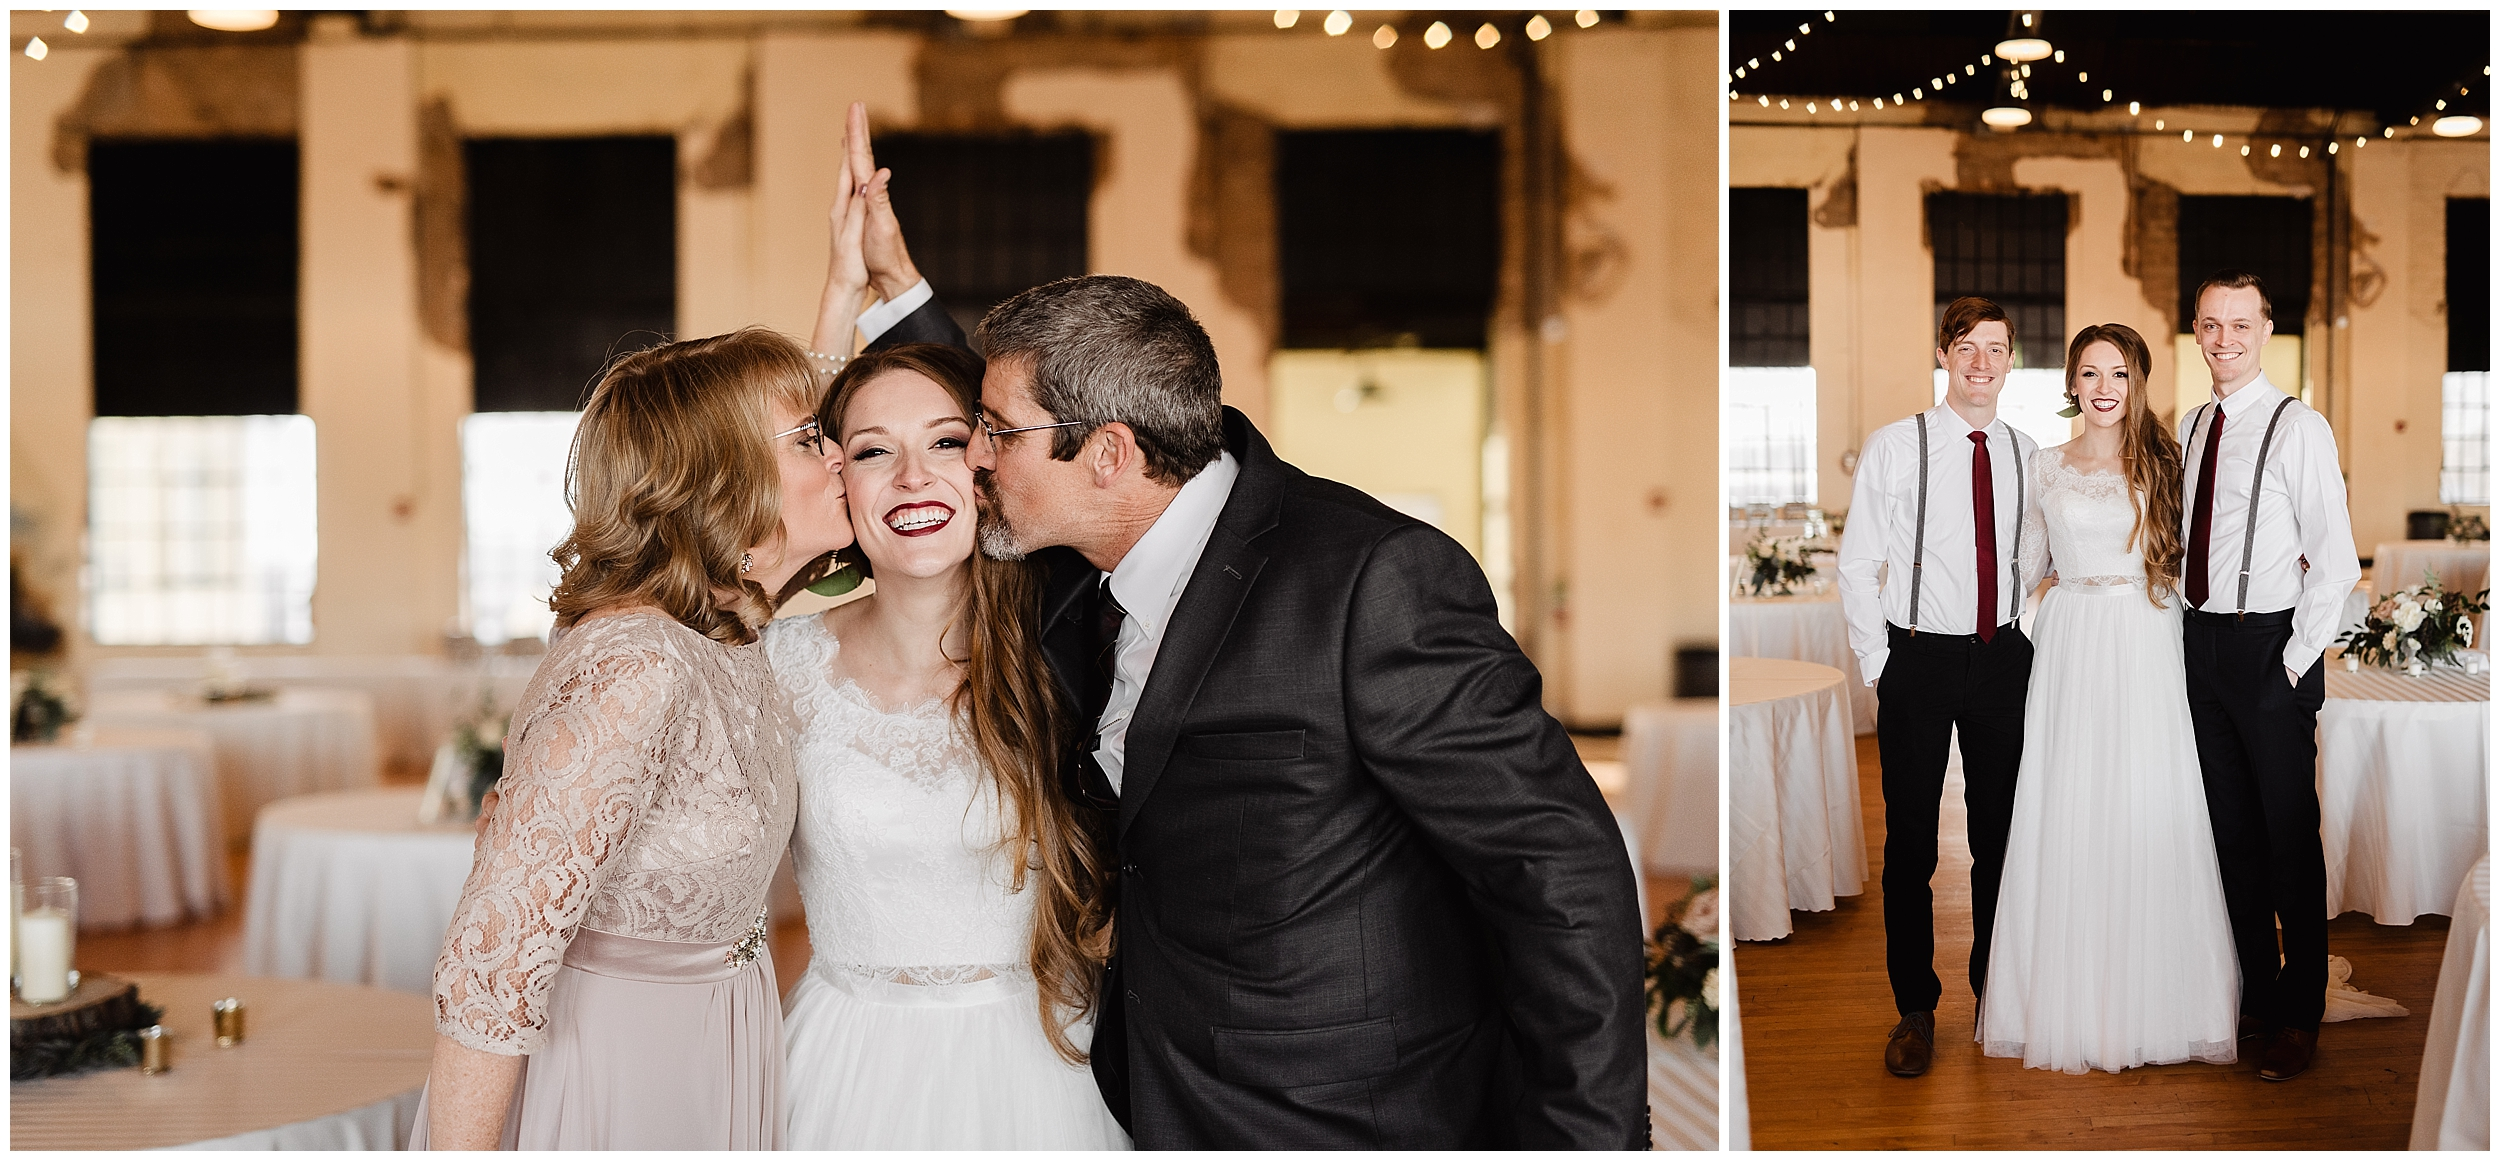 oklahoma wedding photographer first look family bride father brother bridal gown wedding day